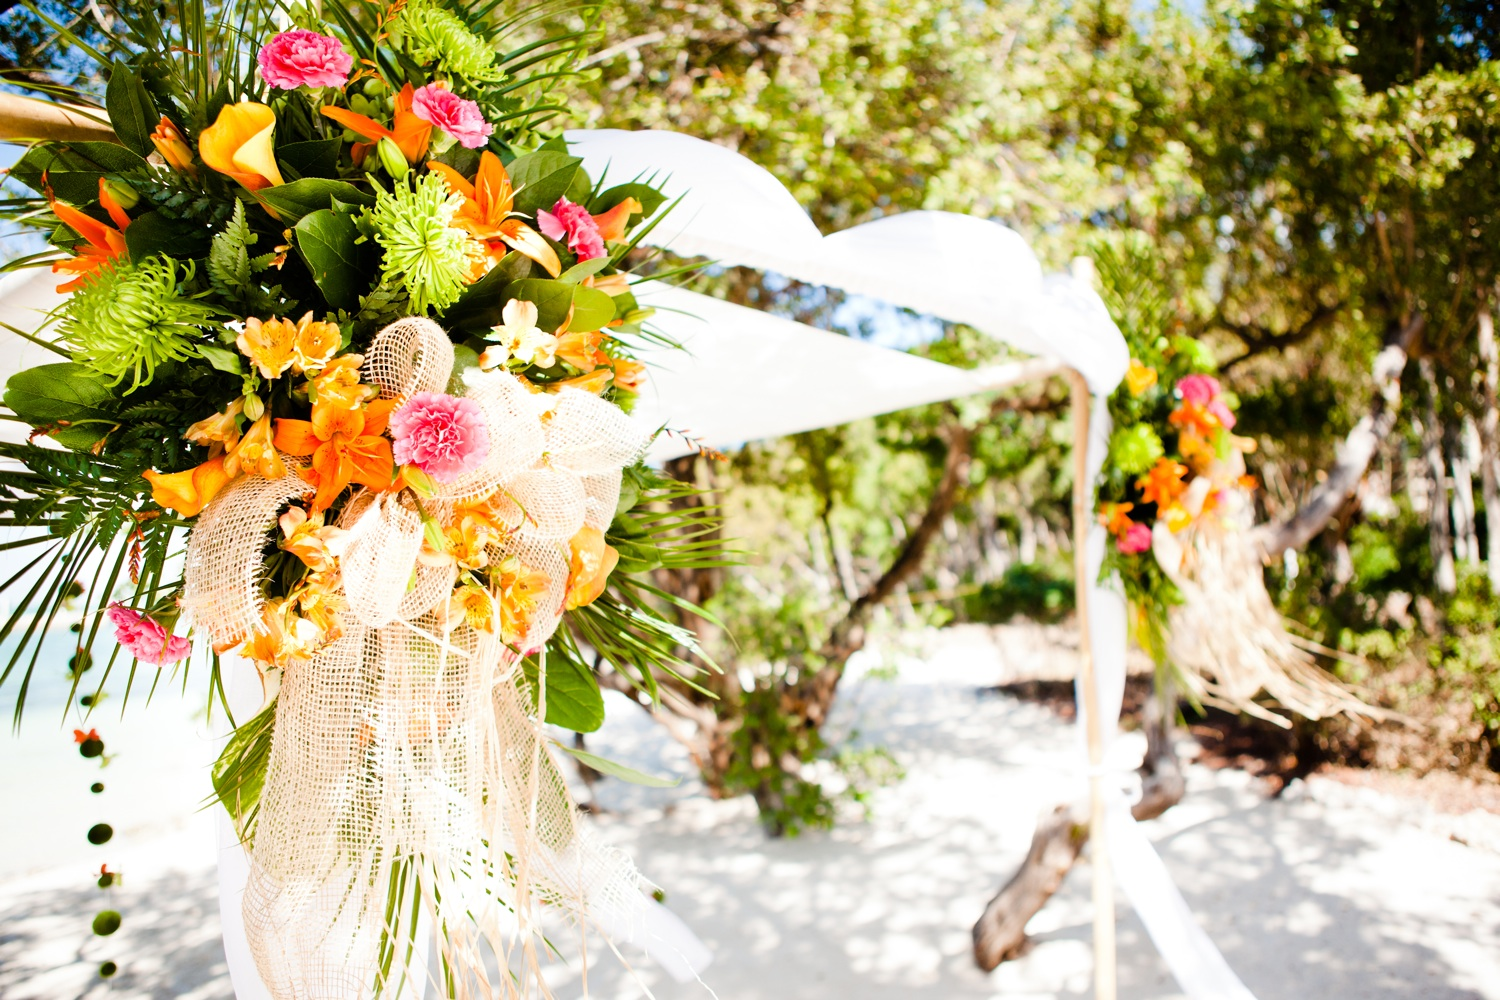 Tropical-wedding-flowers-outdoor-beach-wedding-ceremony.original